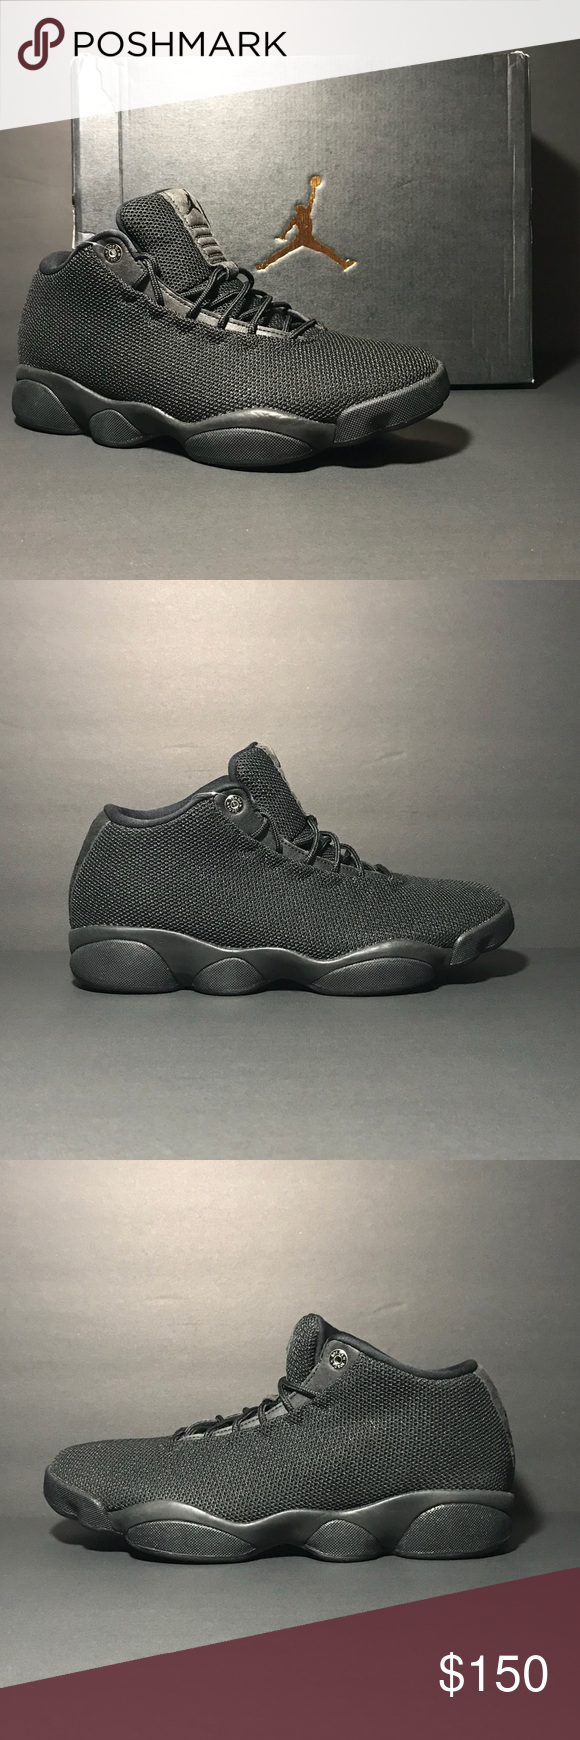 fe7cdaf45a88f8 New Jordan Horizon Low Triple Blk Limited Retro The Air Jordan Horizon Low  doesn t compromise on comfort as Nike blends the iconic styling with modern  ...